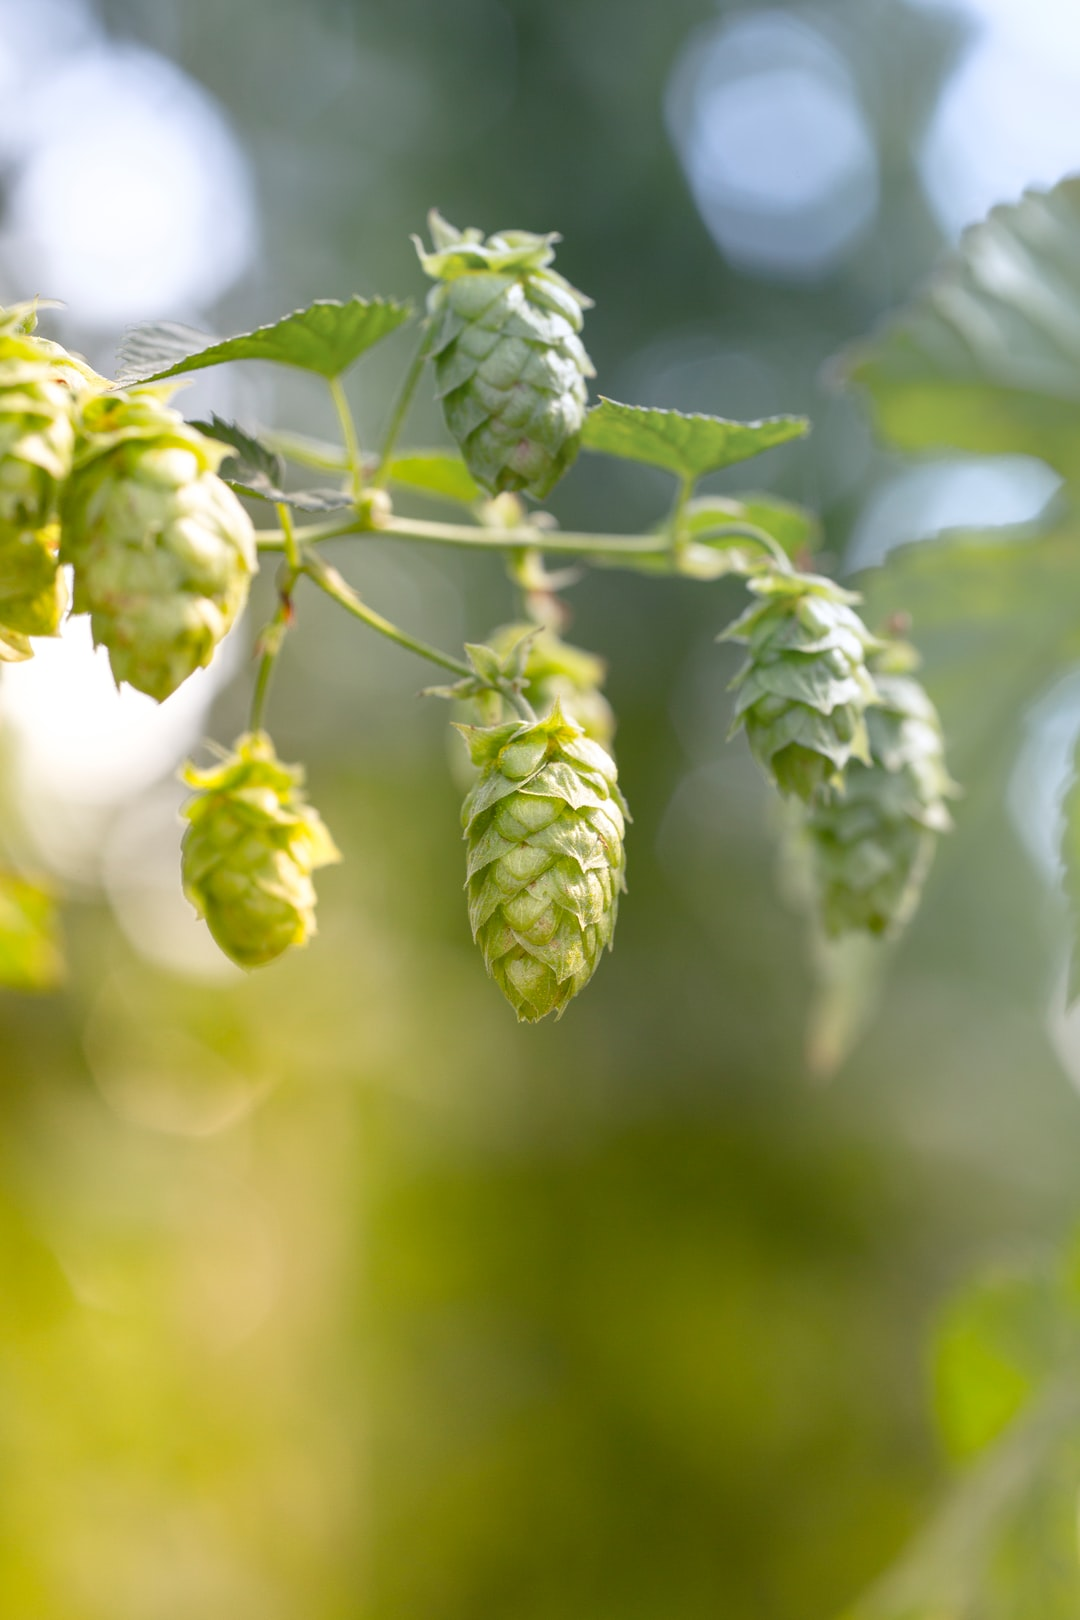 Organic bio hop for craftbeer, grown in Upper Franconia. Made with Canon 5d Mark III and loved analog lens, Leica APO Macro Elmarit-R 2.8 / 100mm (Year: 1993)